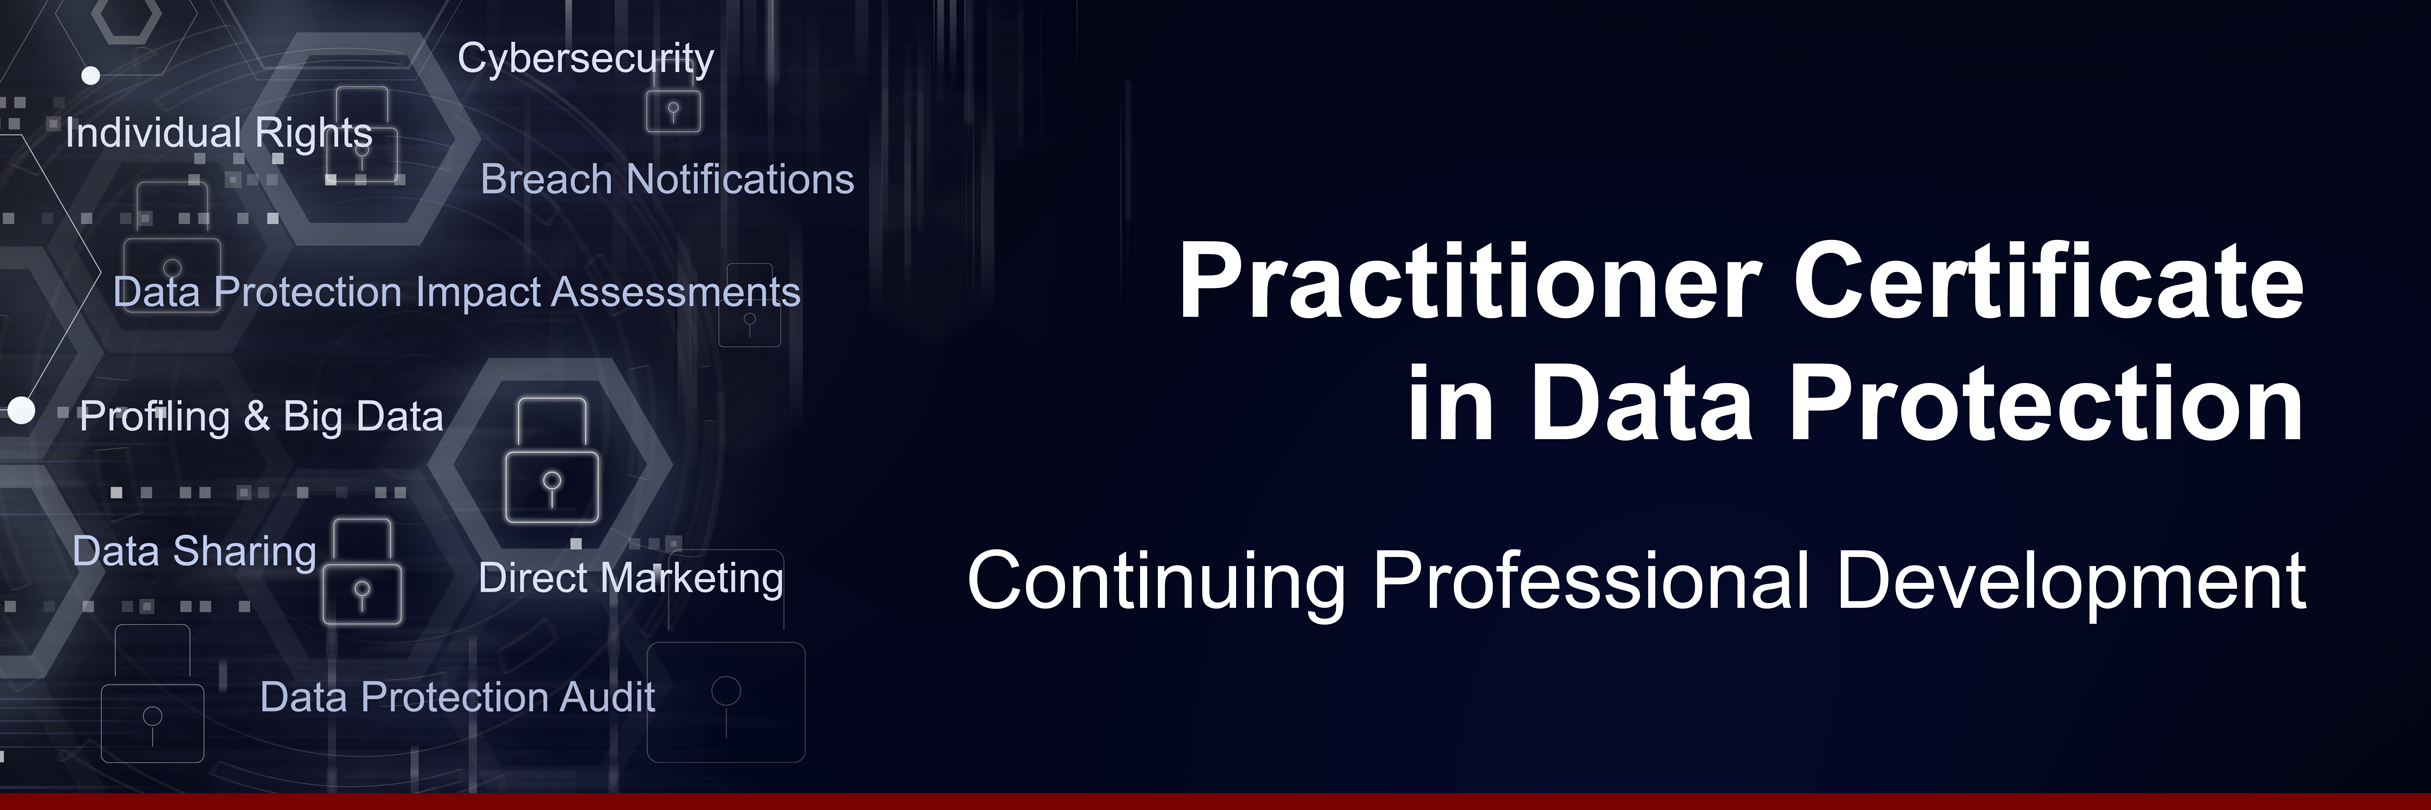 Practitioner Certificate in Data Protection - Continuing Professional Development